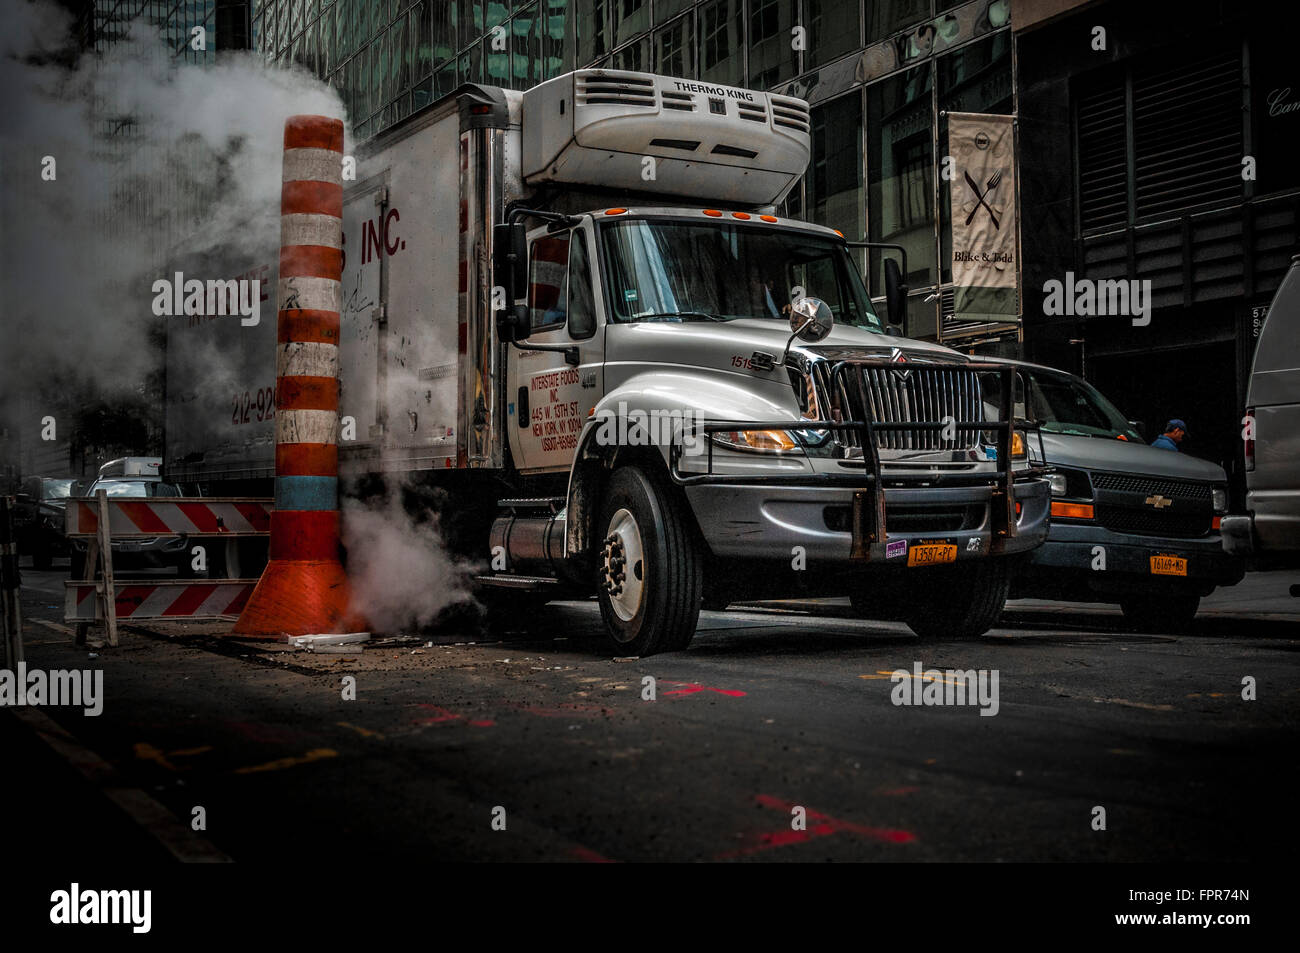 Truck and Steam vapor being vented through a typical Con Edison orange and white stack, New York City, USA. - Stock Image